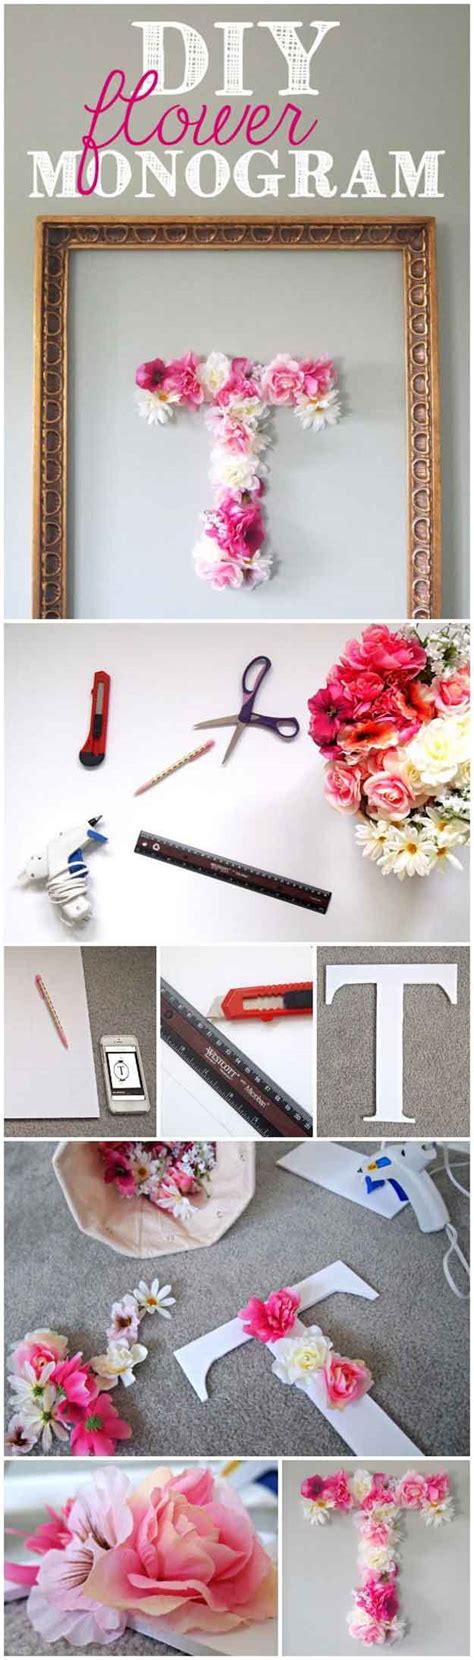 arts and crafts for bedrooms diy projects for teens bedroom diy ready